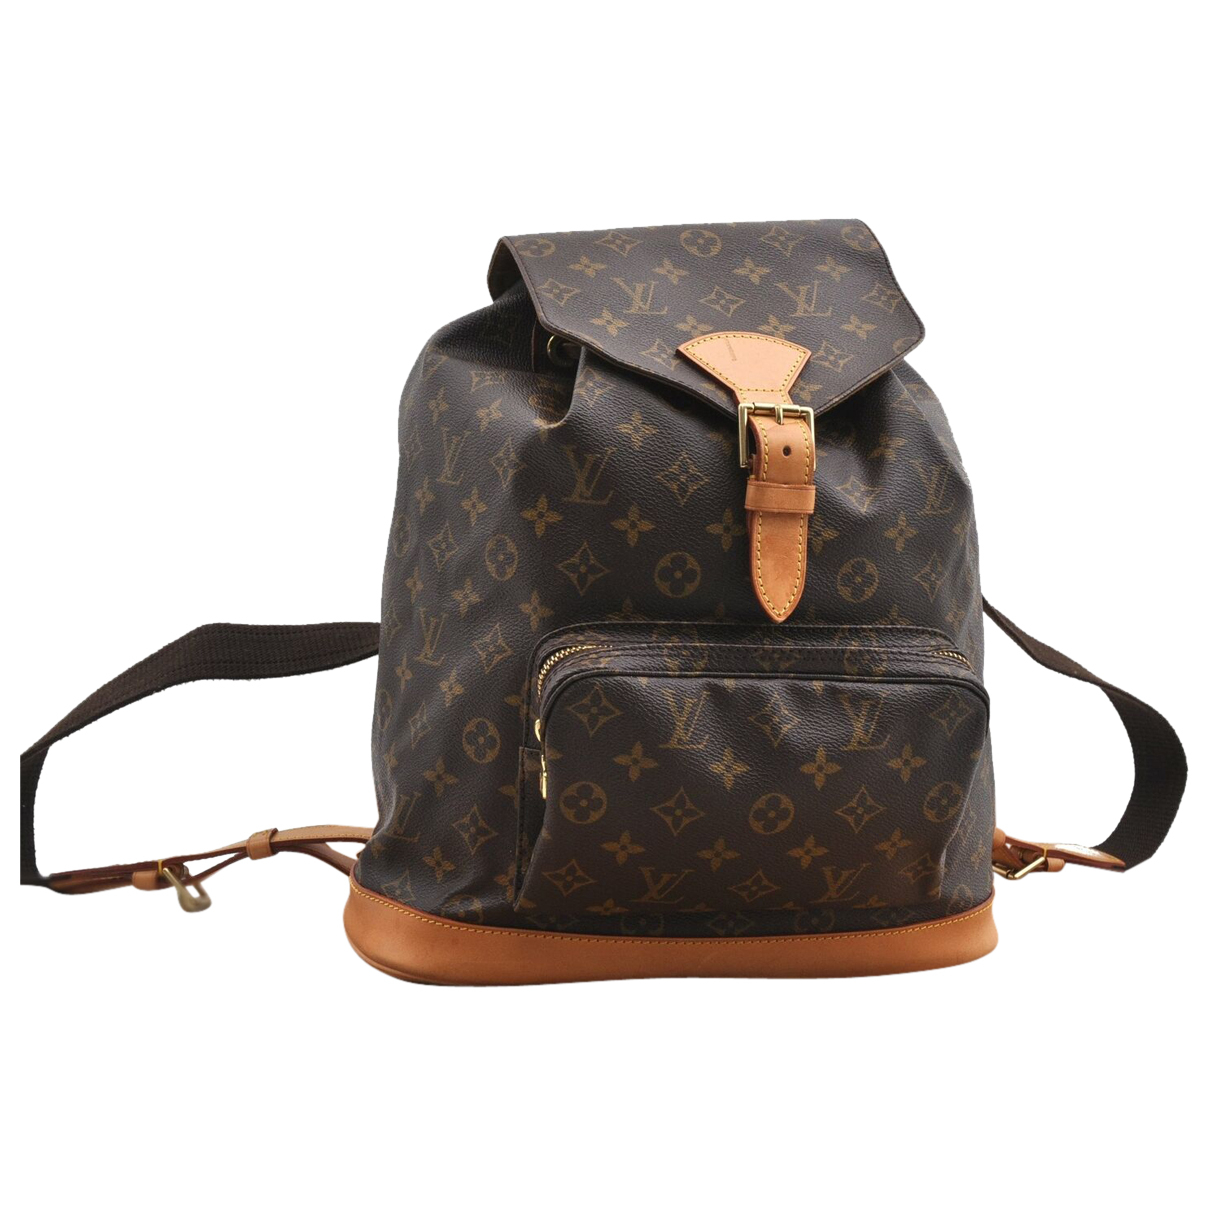 Mochila de Lona Louis Vuitton